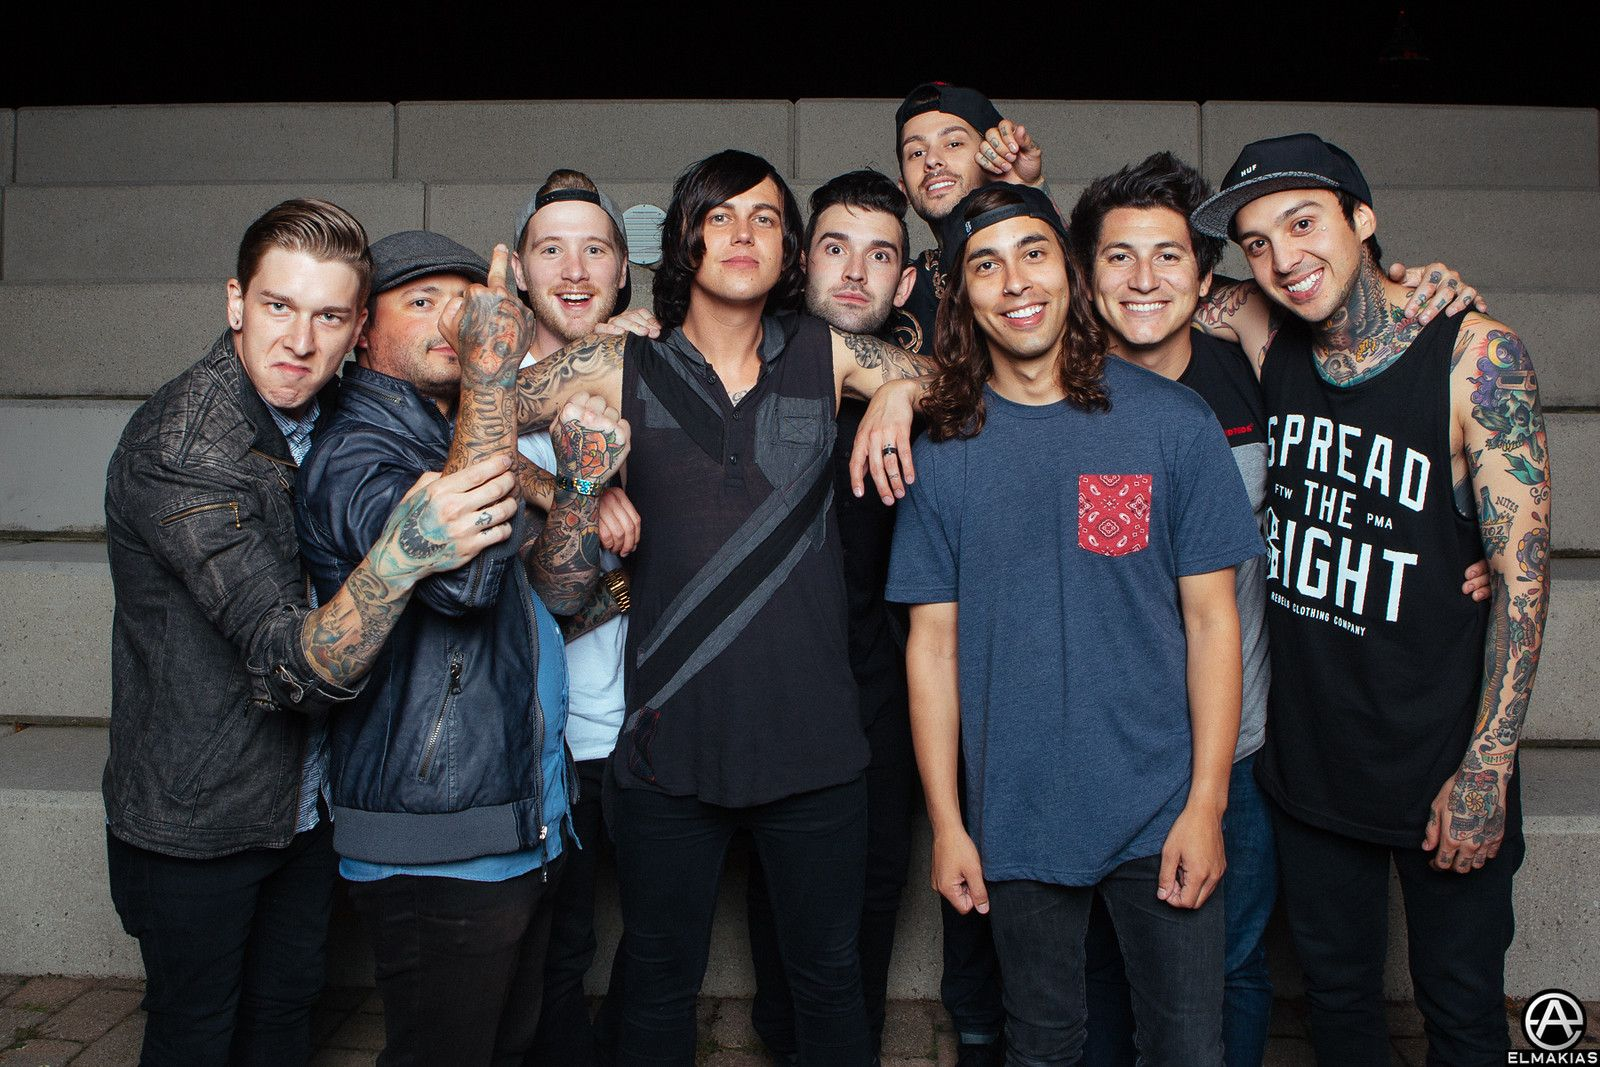 pierce the veil and sleeping with sirens candid photo from the world tour shoot adam elmakias oh my word pierce the veil looks so adorable in this pic